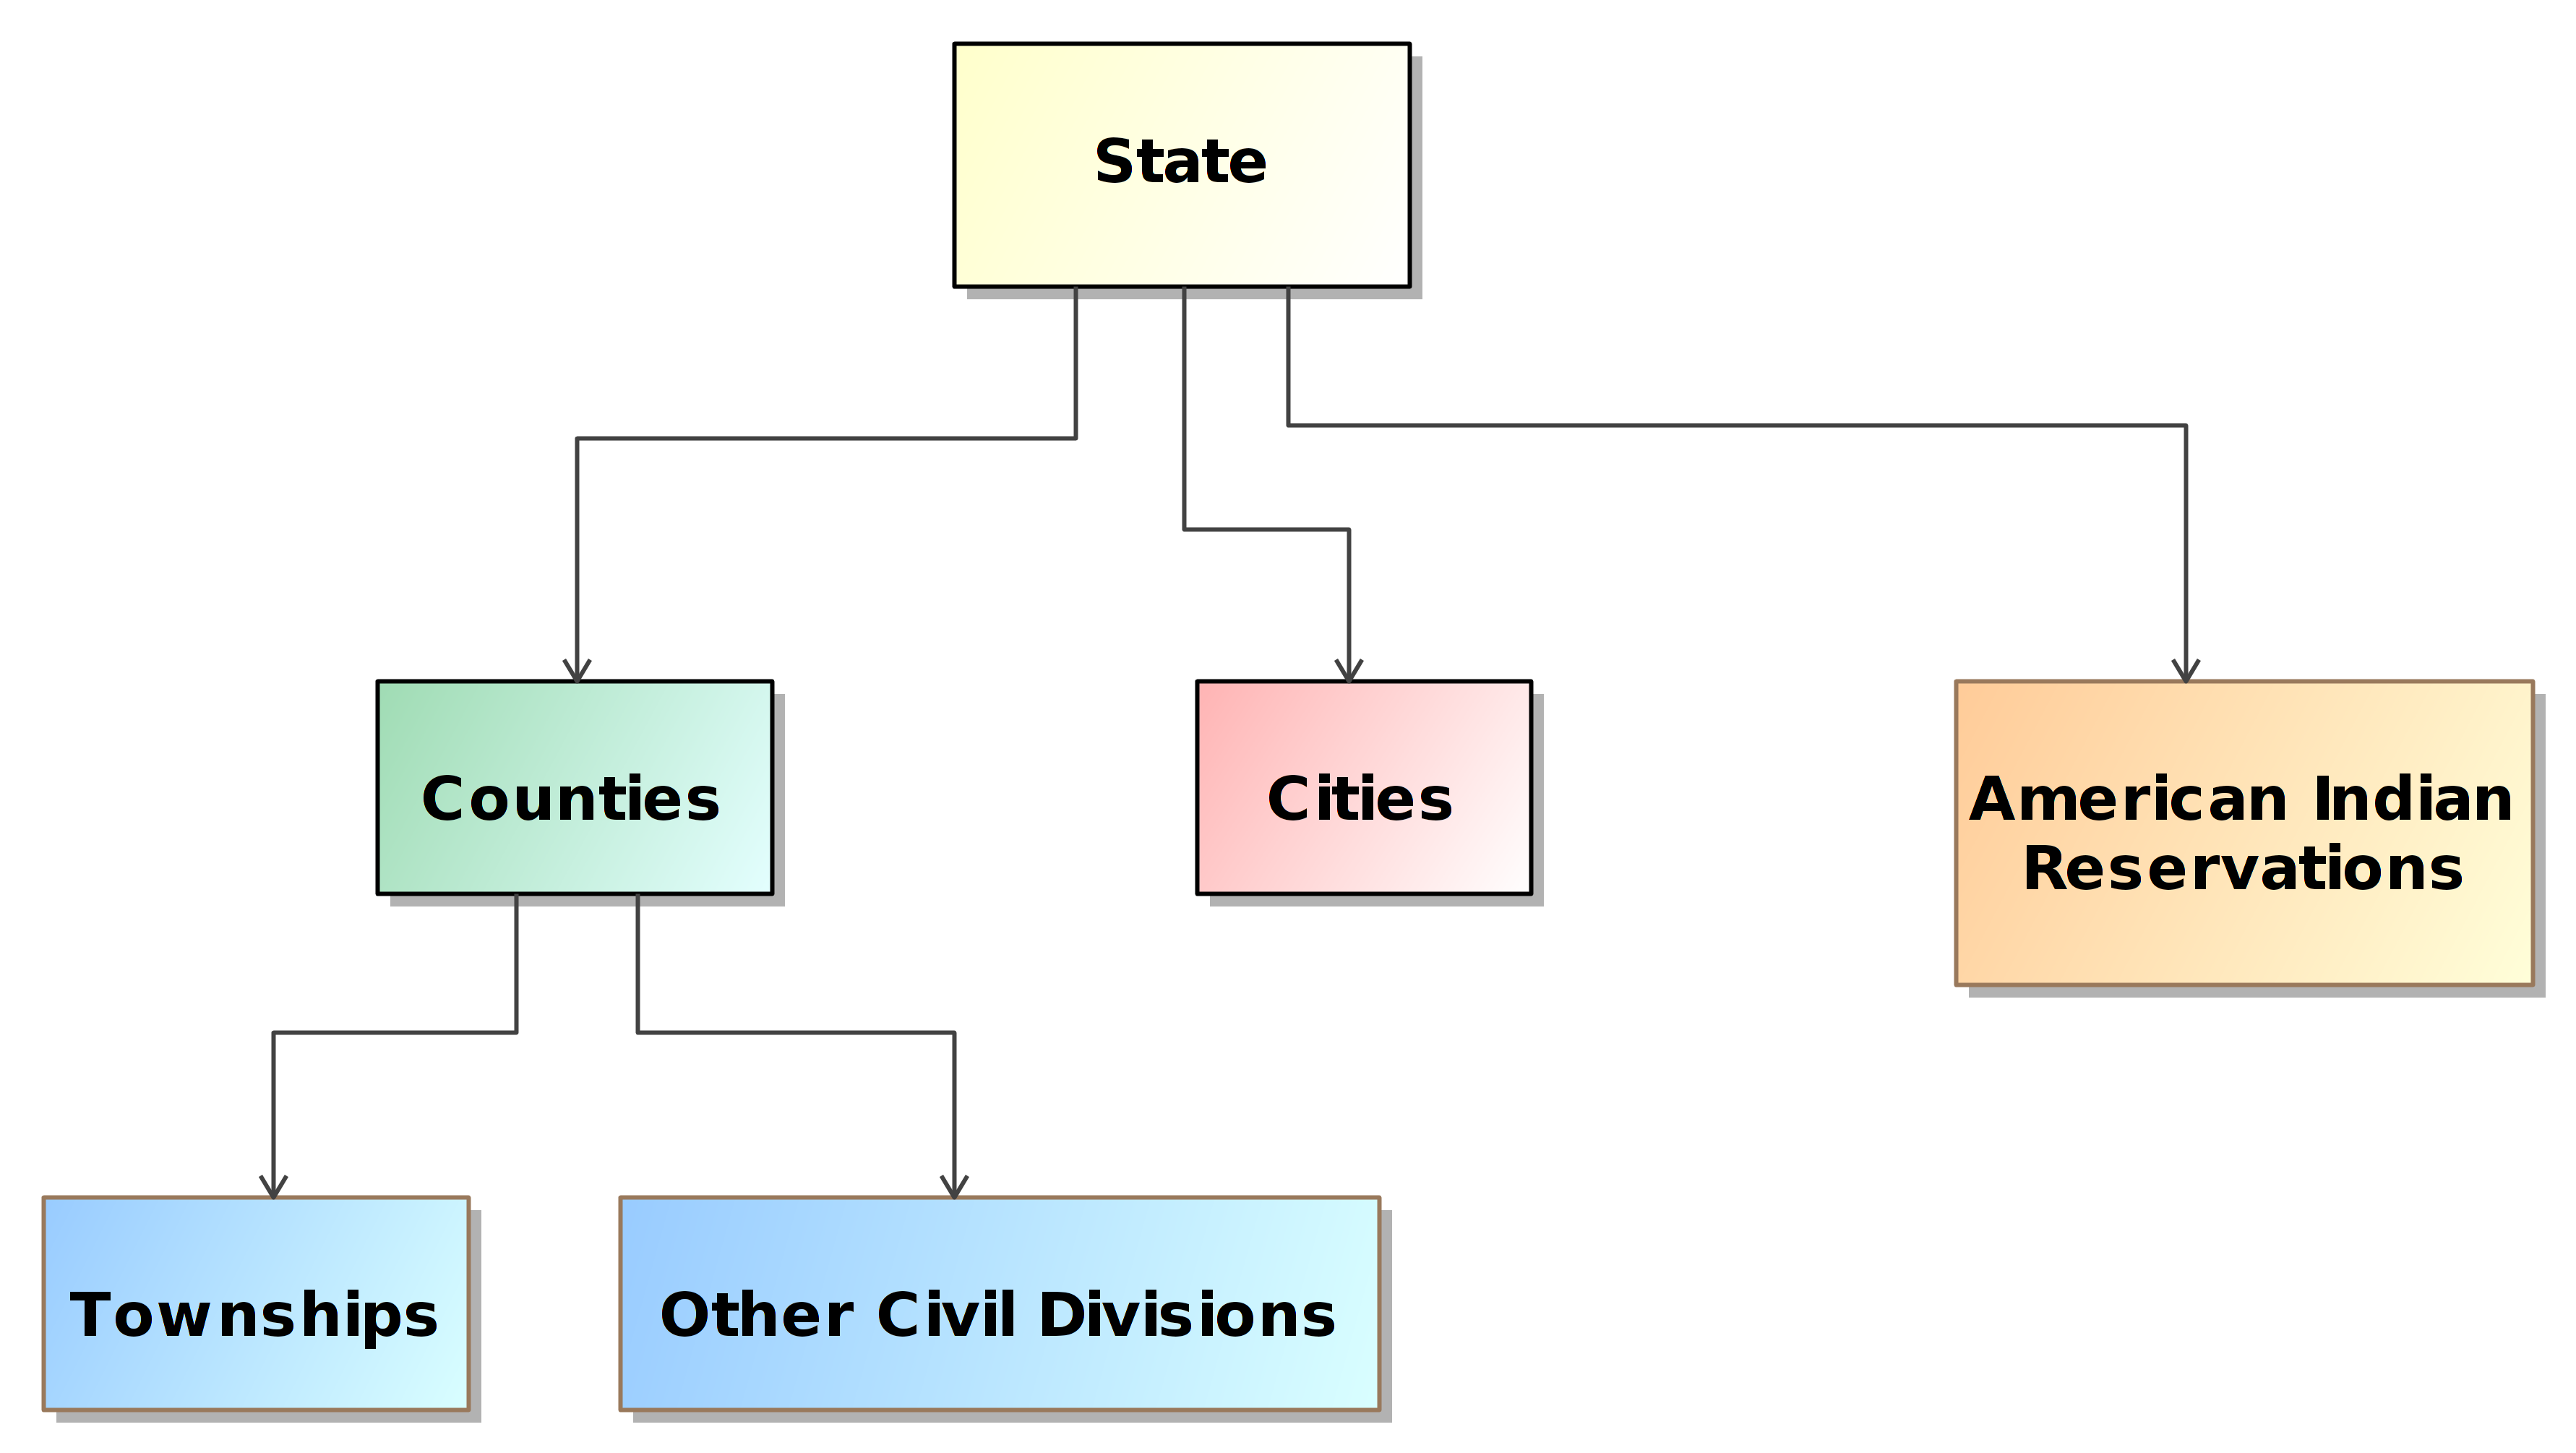 Nist Sp 1500 100 Election Results Reporting Common Data Format An Example Of Uml State Machine Diagram For Water Phases Figure 1 Governmental Based Geographies